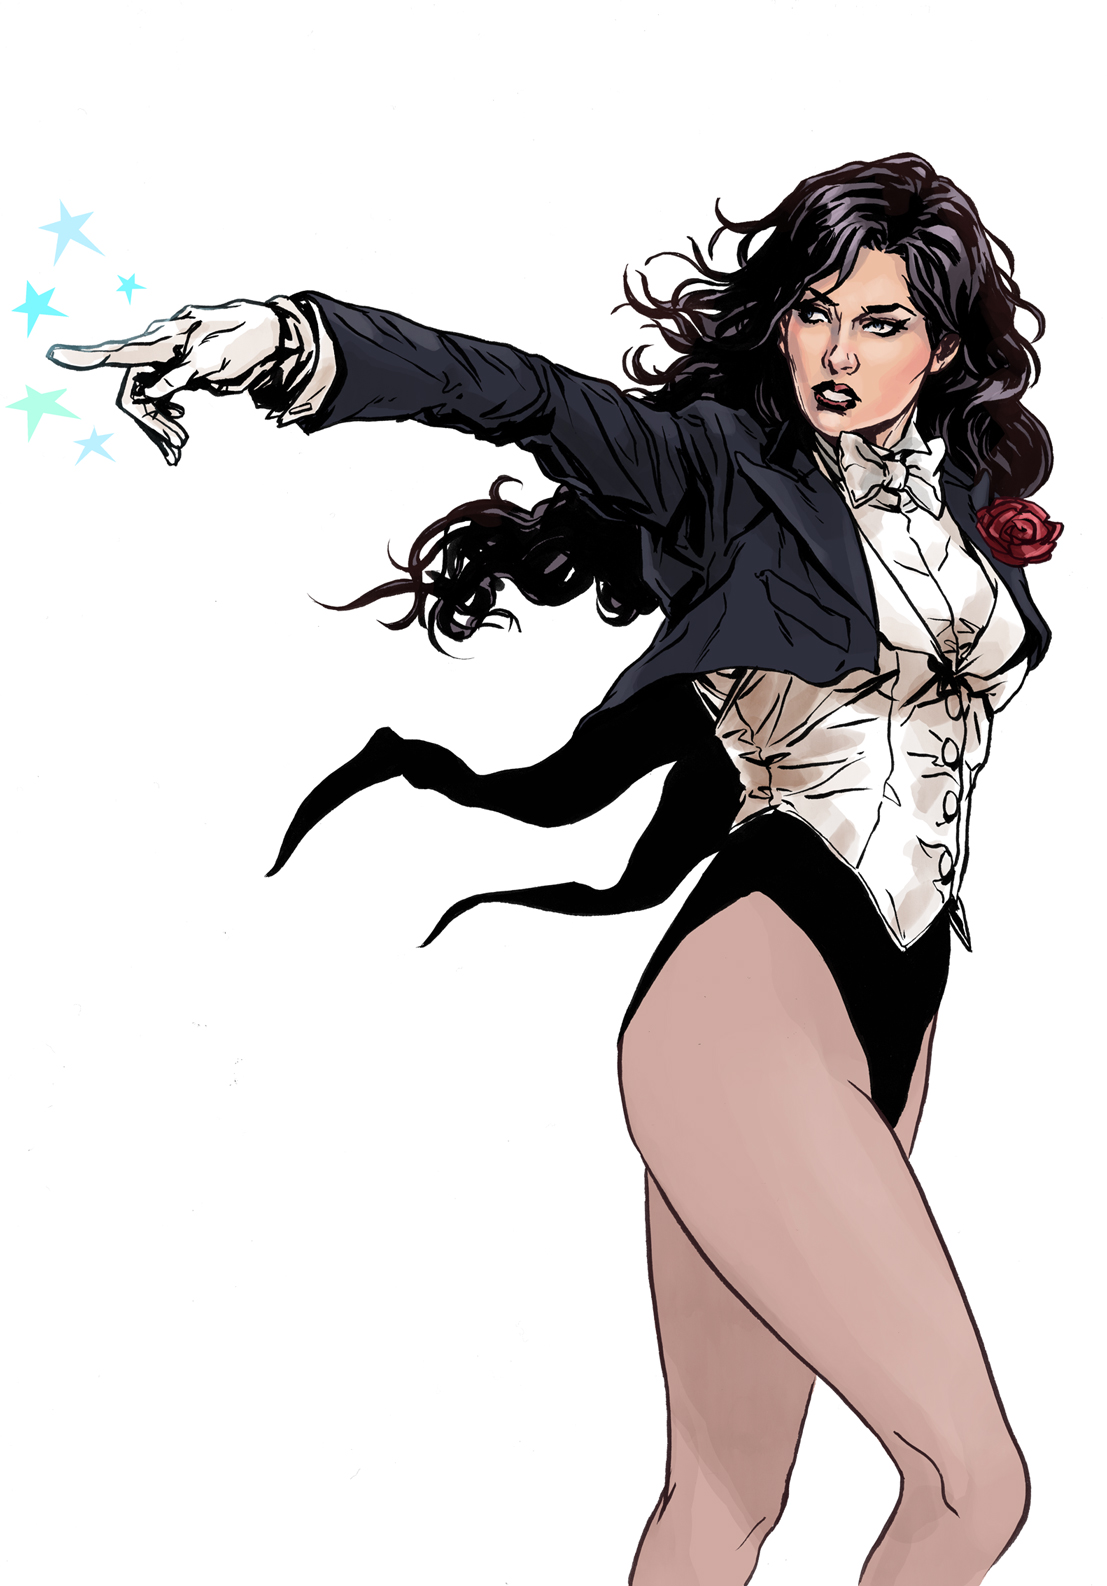 Zatanna mistress of magic by MarcLaming